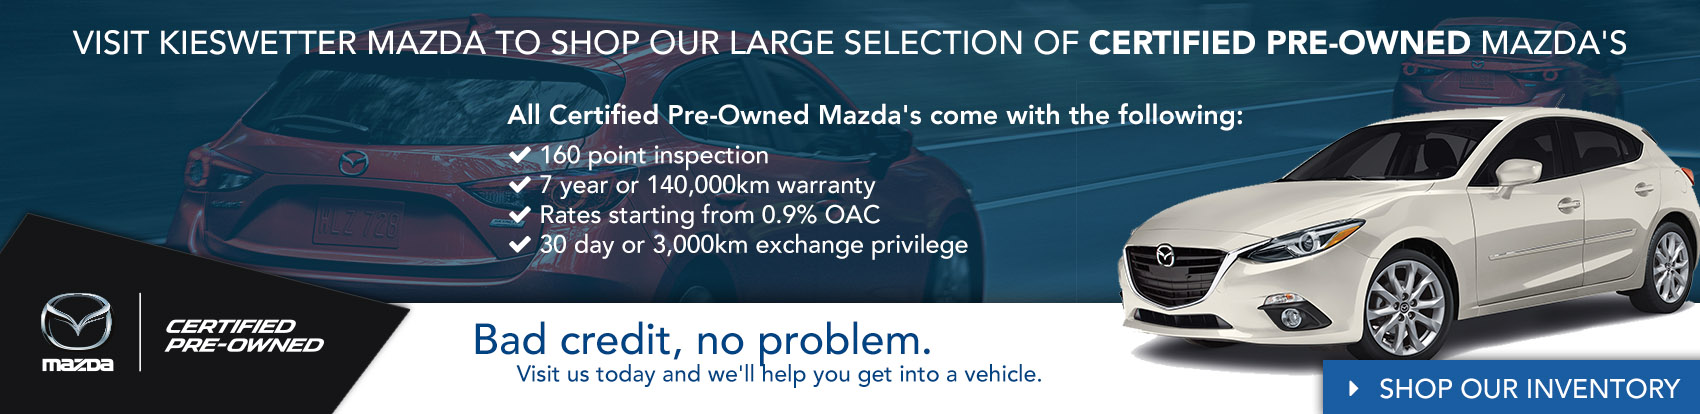 Kieswetter Mazda Certified Pre-Owned Vehicles